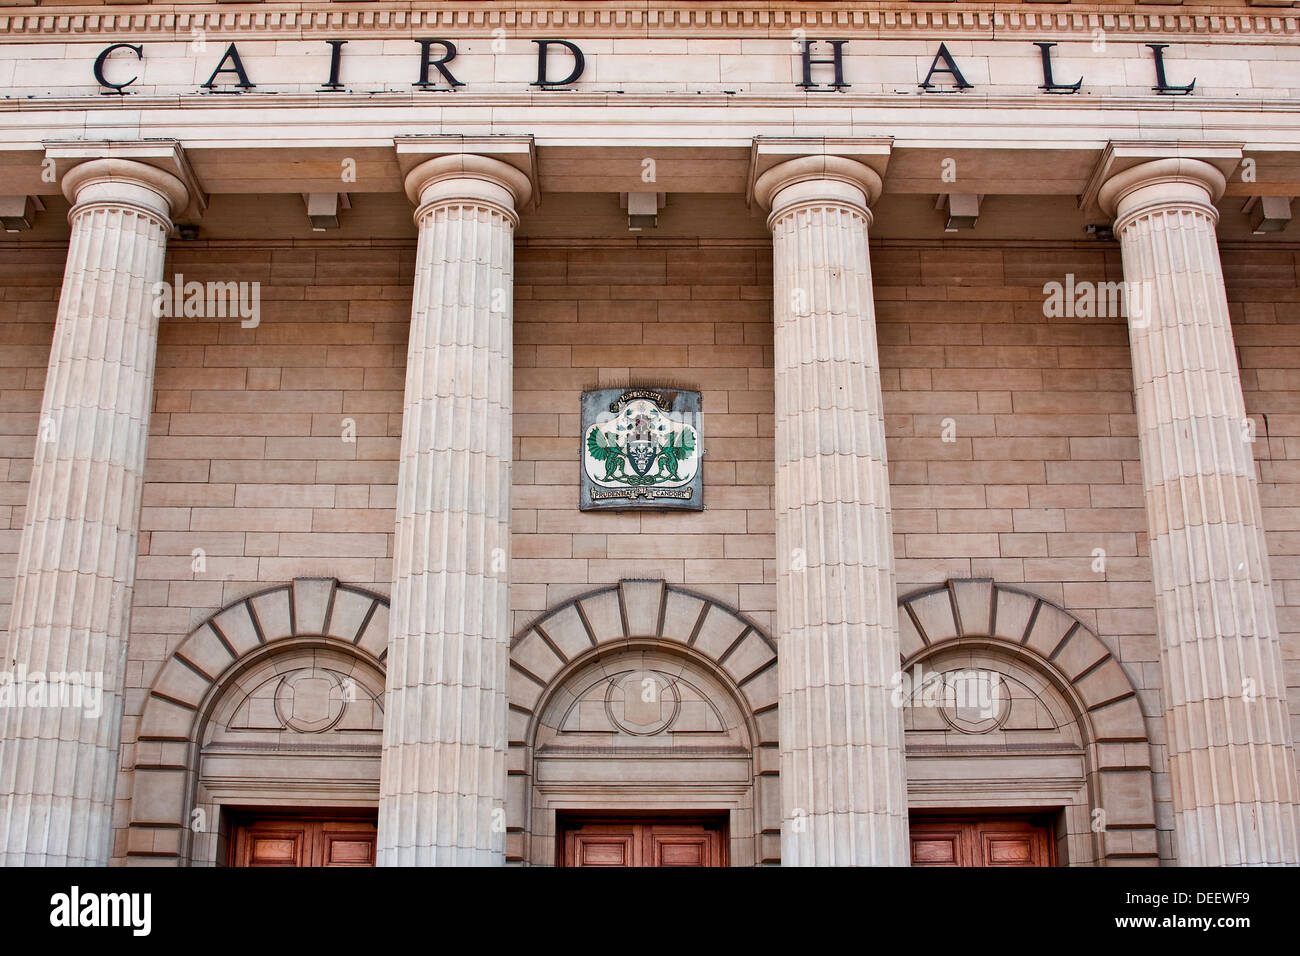 Close-up view of the Doric columns and arched doors at the main entrance of the Caird Hall in Dundee, UK Stock Photo